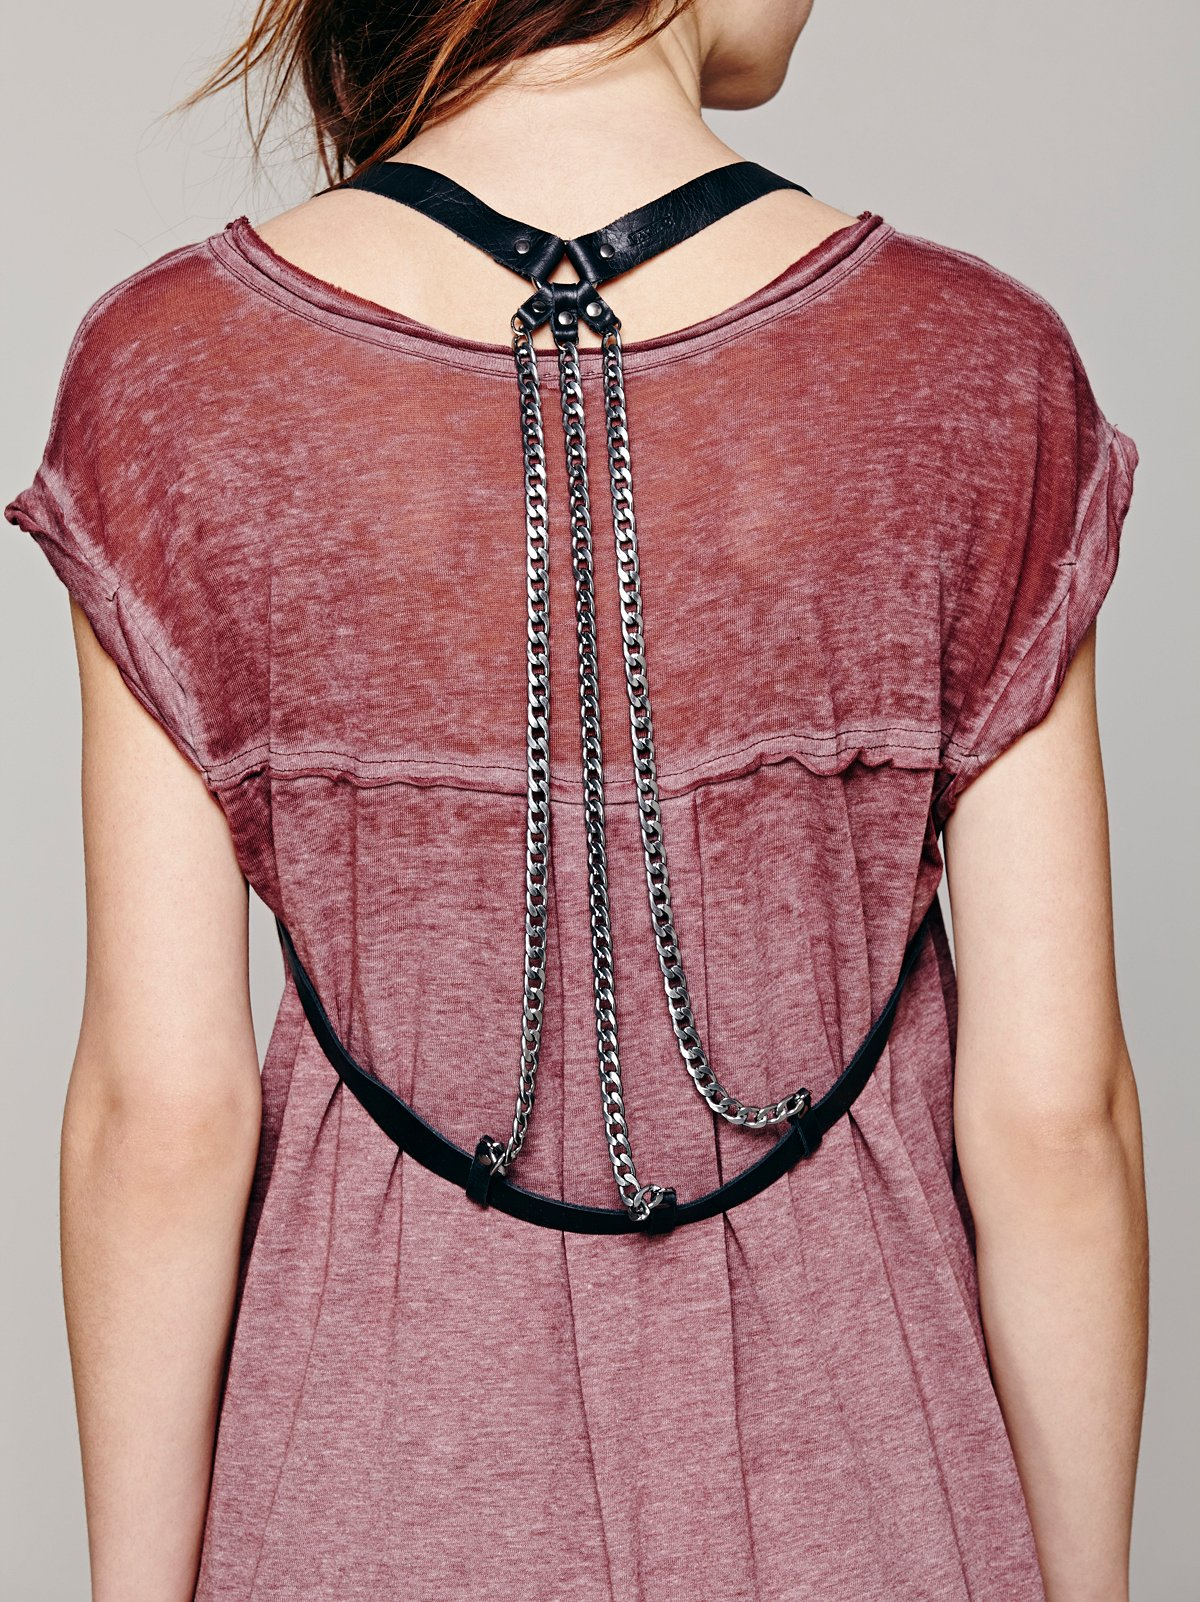 Triple Chain Harness